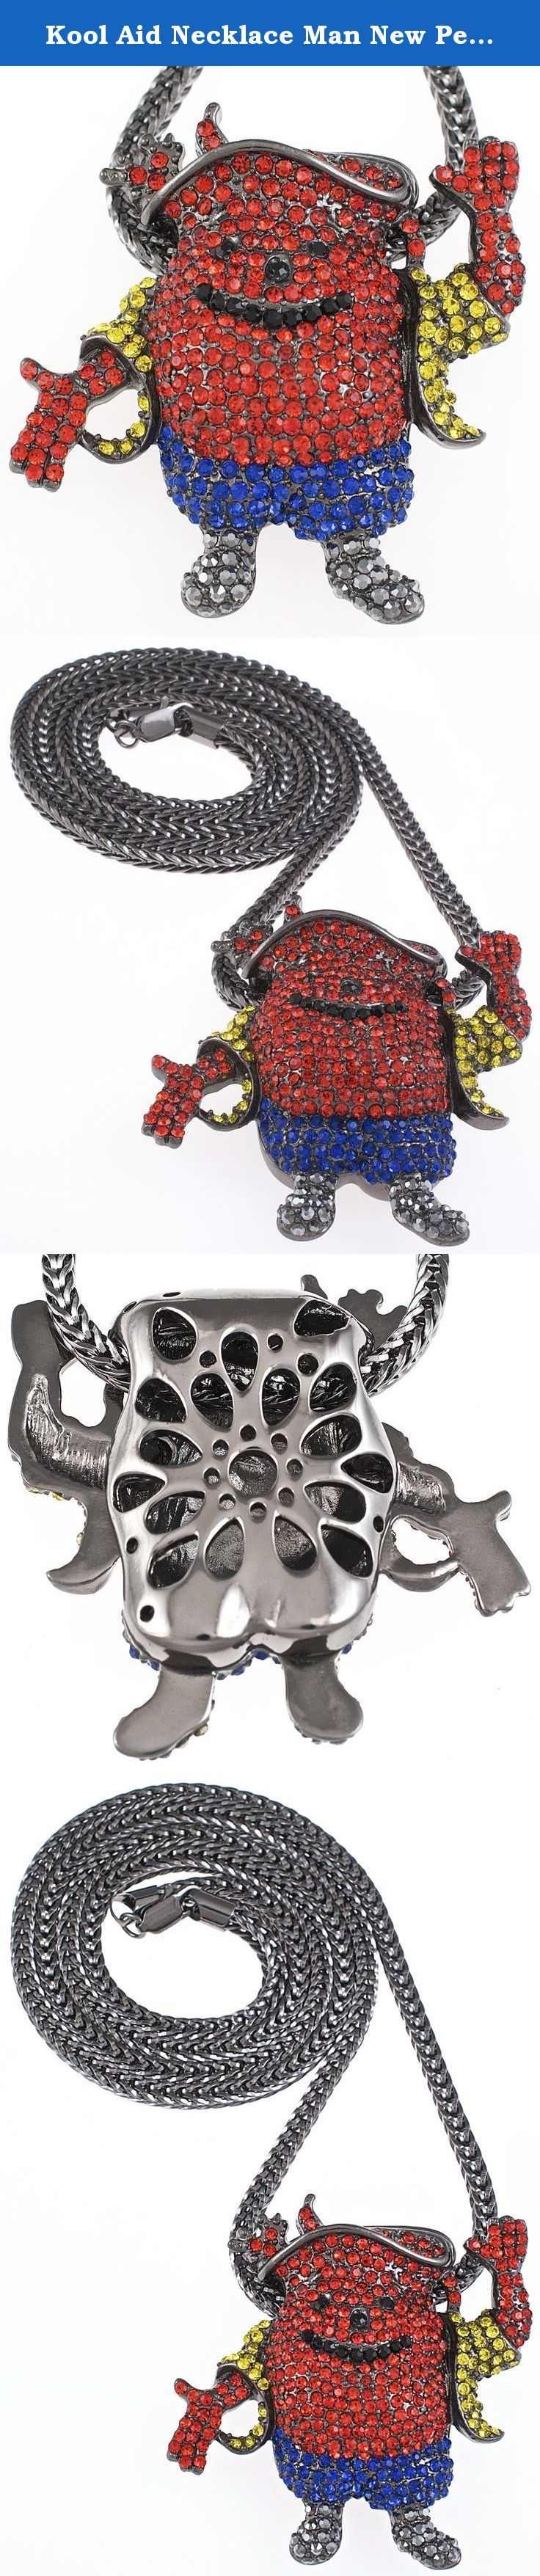 Kool Aid Necklace Man New Pendant With Gun Metal Color 36 Inch Franco Style Chain. Iced Out Pendant Necklace Piece. Iced out in gold, blue, black, red, and silver color crystal rhinestones. Gun metal color Franco style 36 inch, 4mm chain with lobster claw clasp. Well crafted pendant measures 2.5 inches by 2.5 inches. Your satisfaction is guaranteed.